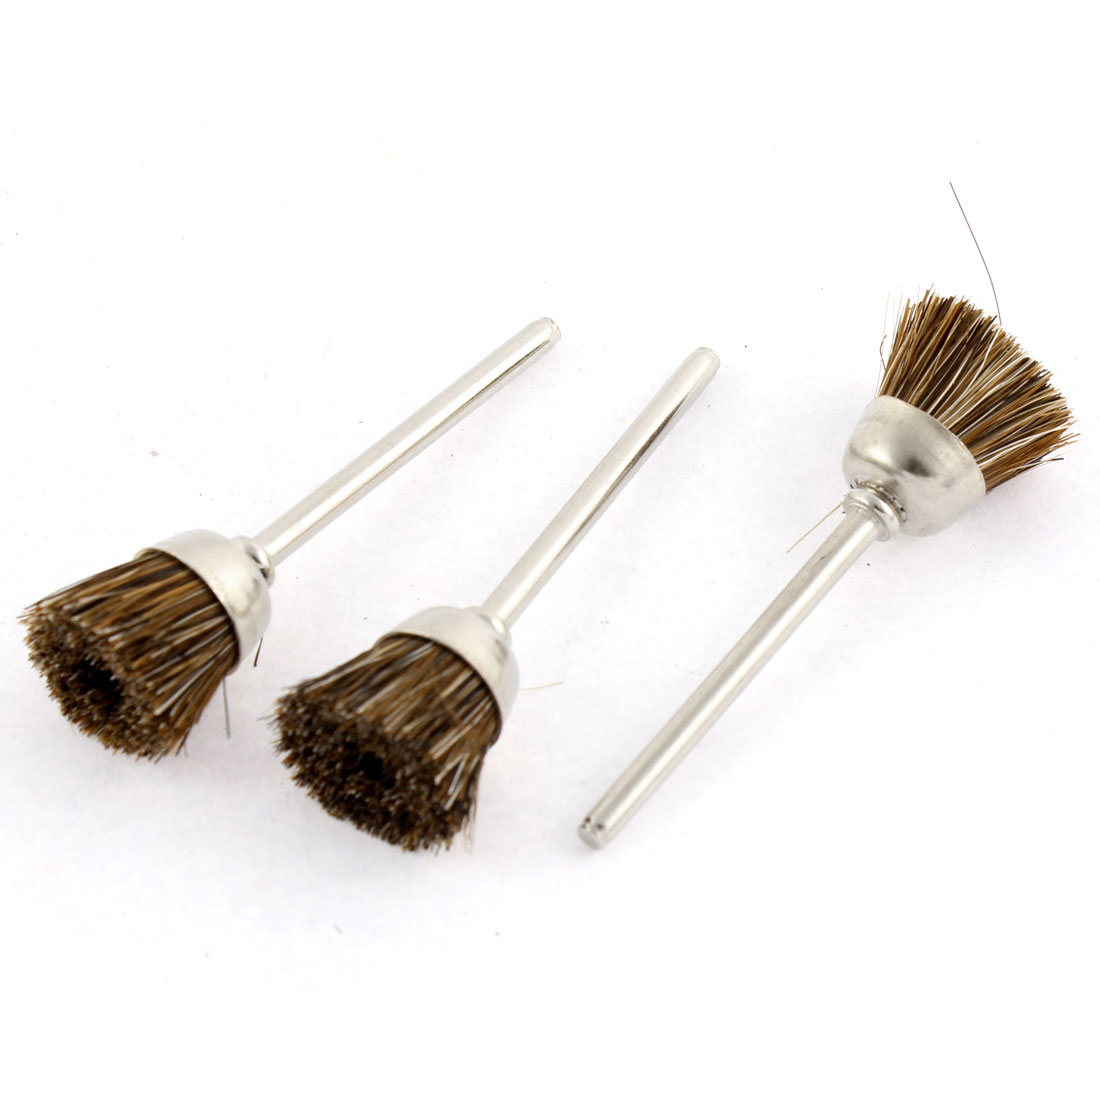 Brown Nylon Bristle Polishing Brushes Jewelry Cleaning Buffing Tools 3pcs